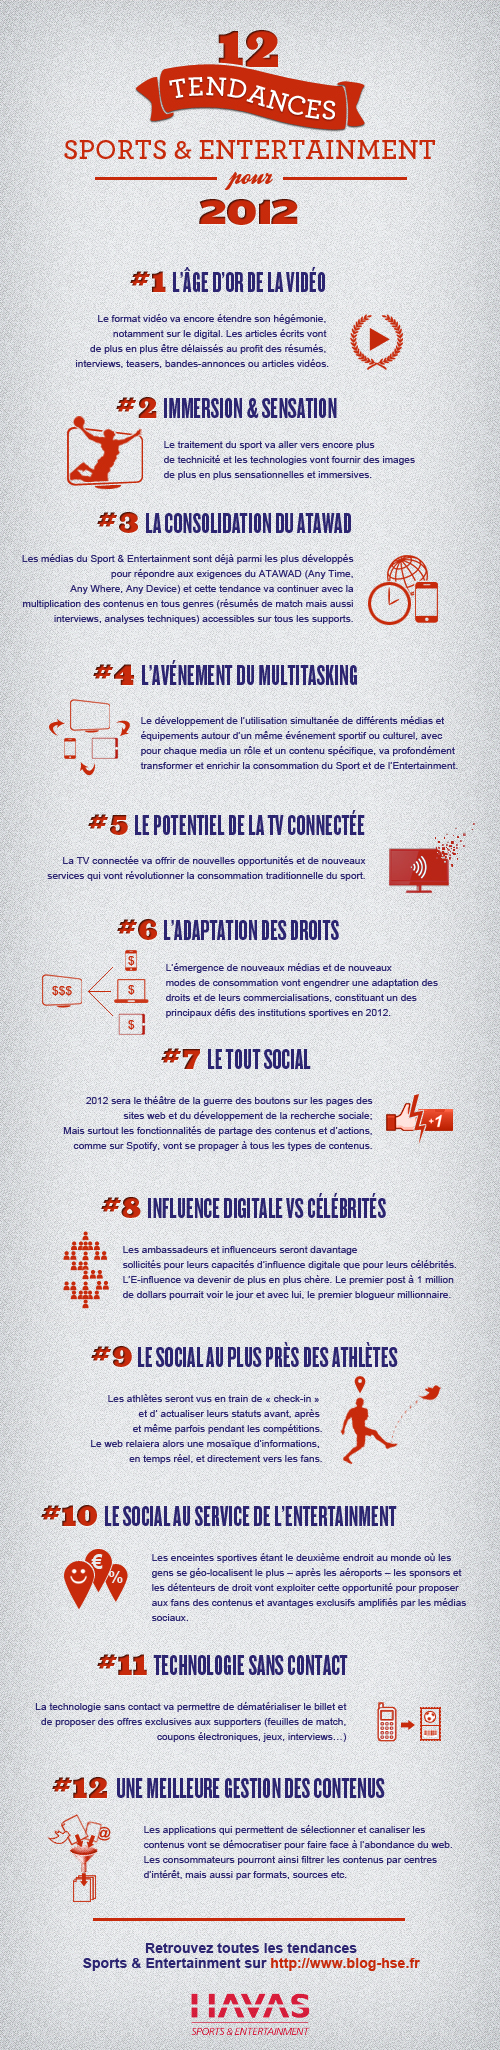 Tendances 2012 Havas Sports Entertainment